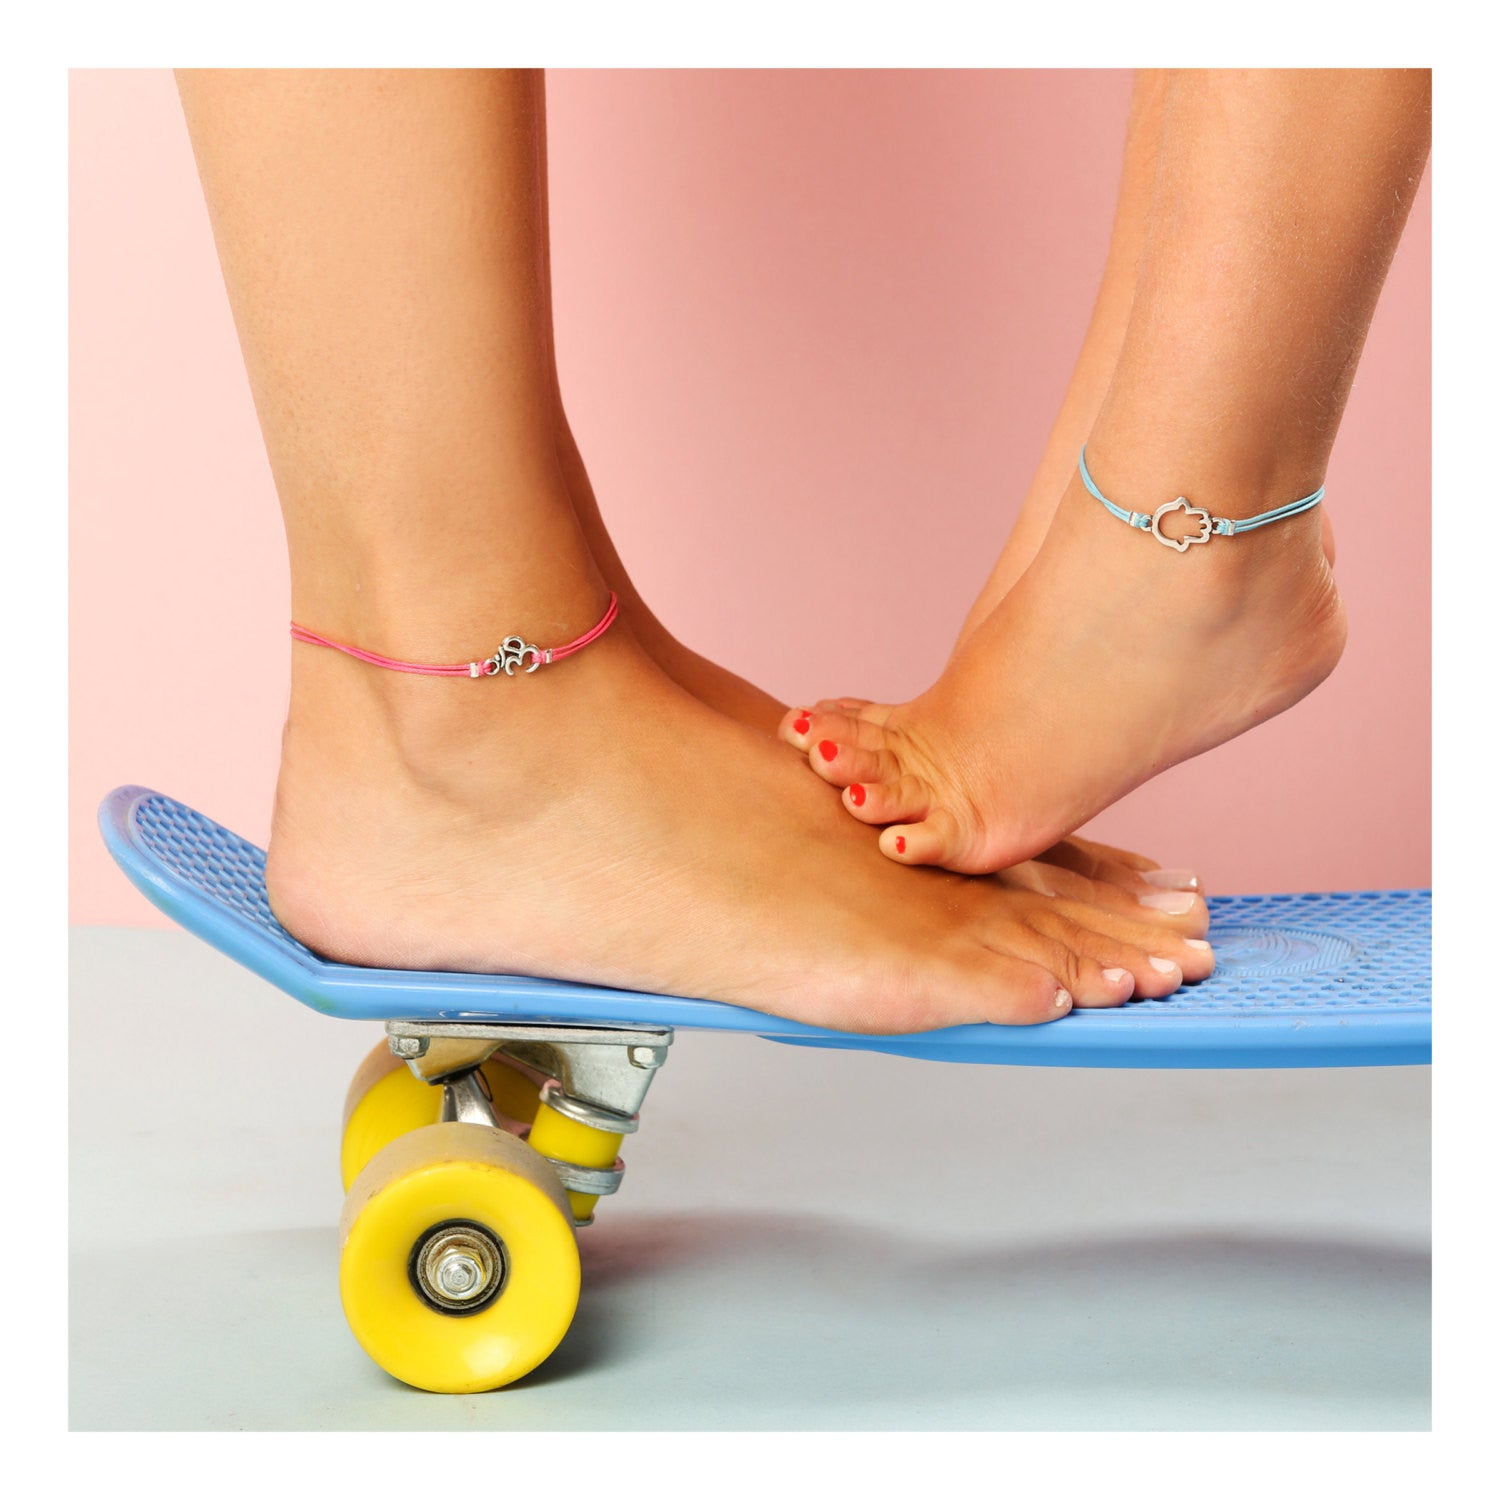 you crochet and models when beach to of yoga many cute for beautiful are choose sandals we anklet shop product shoe barefoot summer wearing dresses think nude wedding talking girls would shoes about there